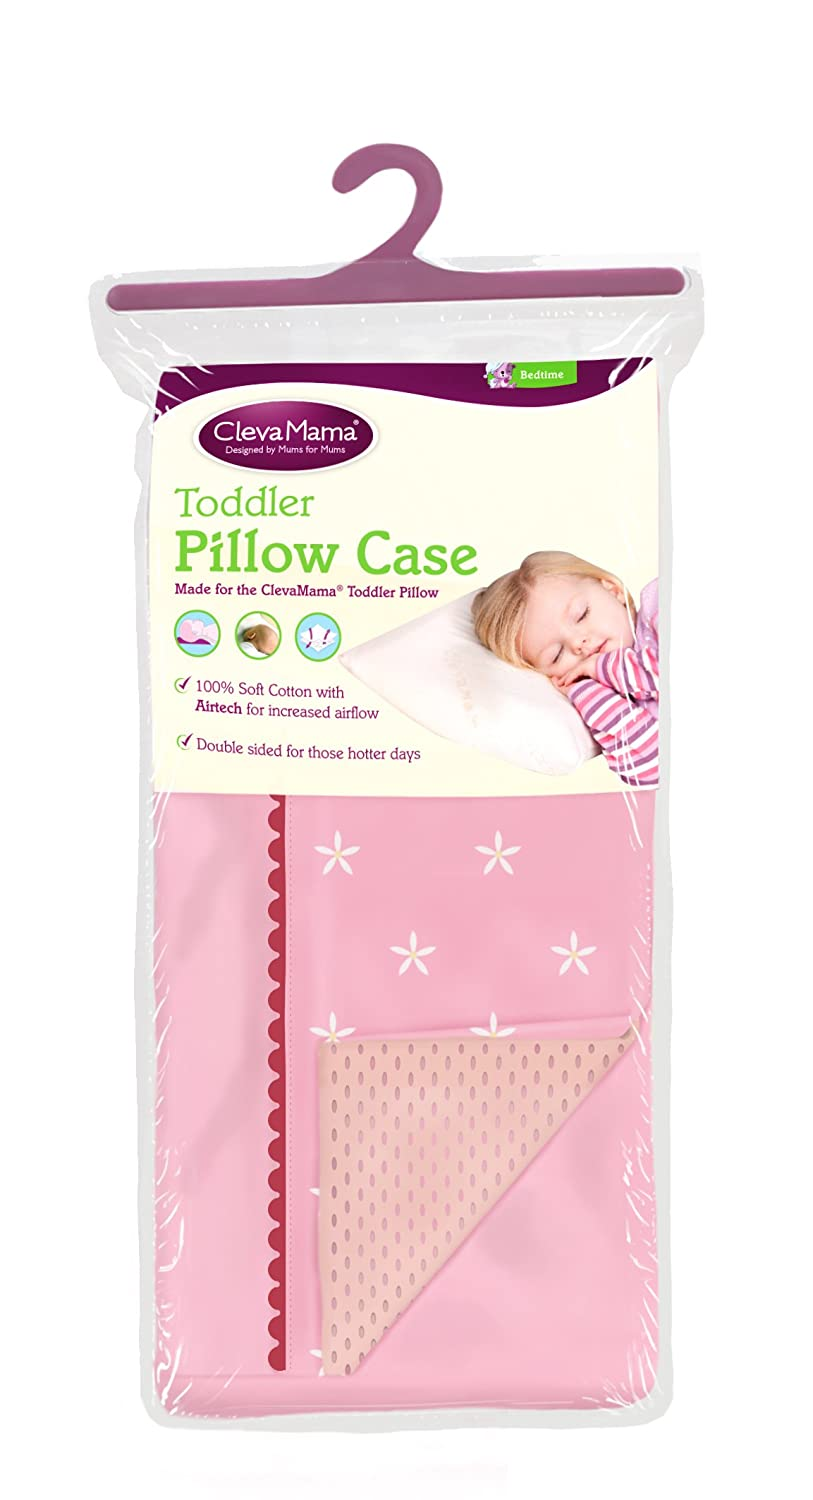 Clevamama Replacement Toddler Pillow Case (Pink) 7510